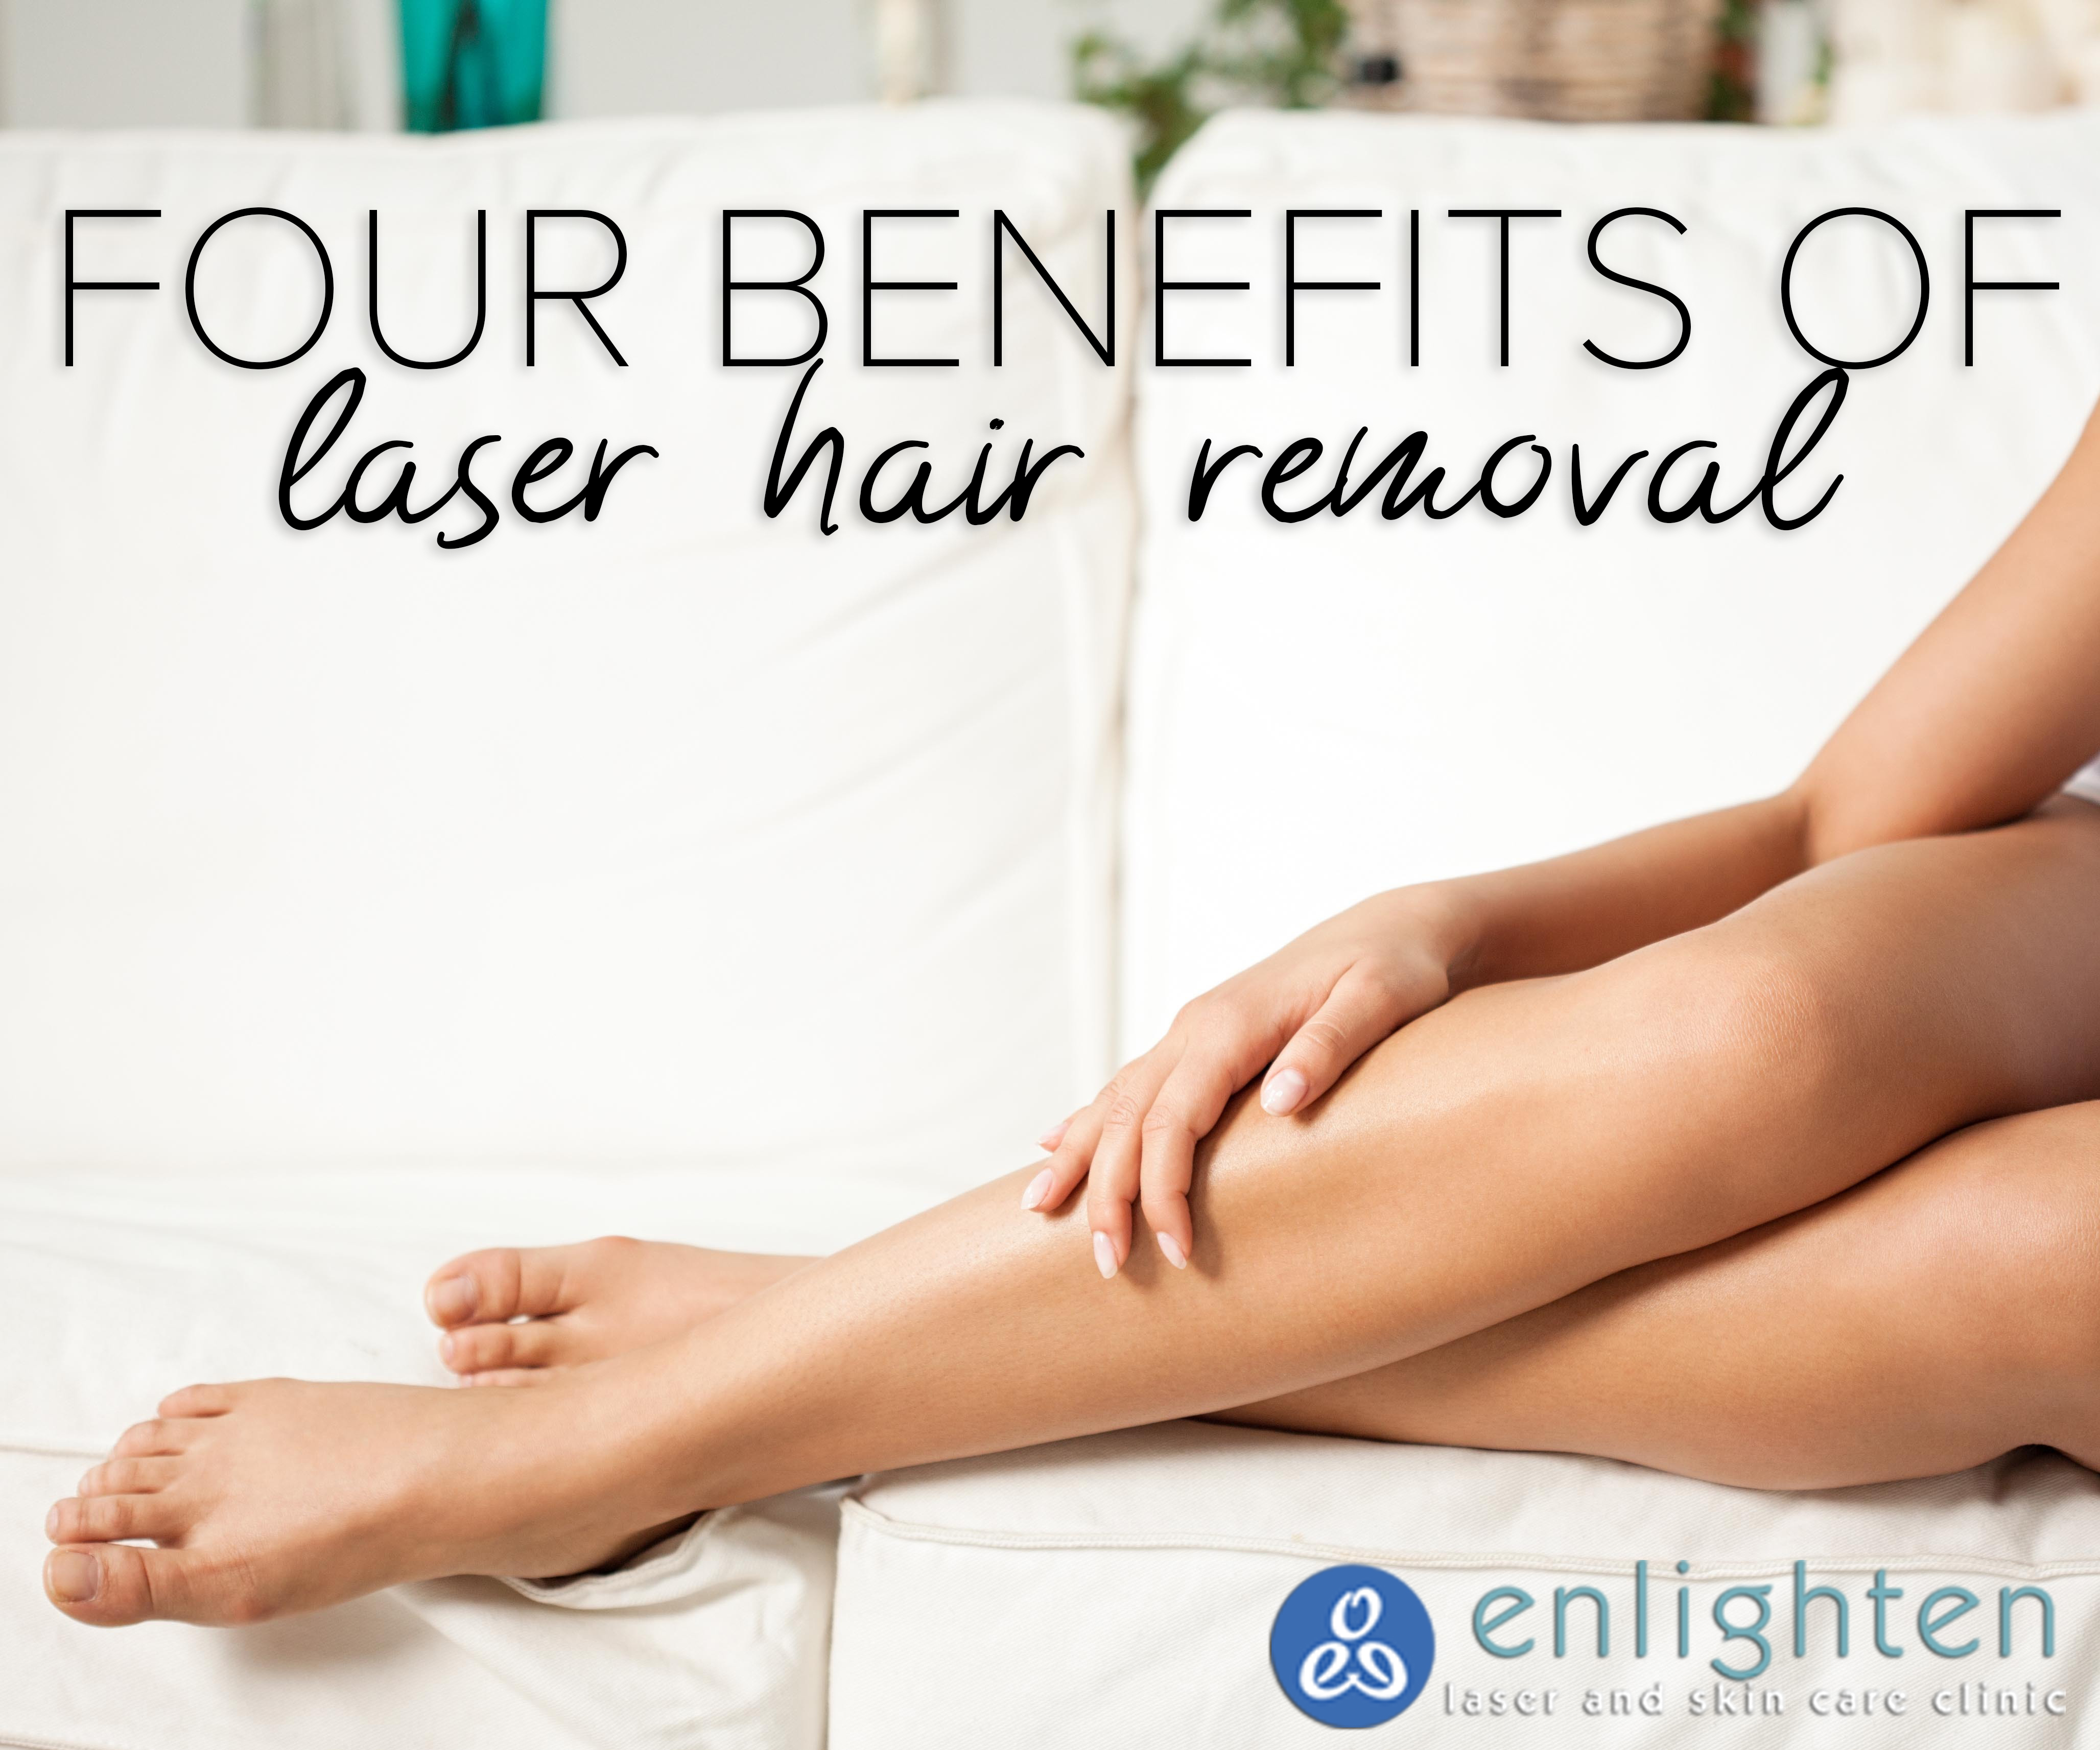 Four Benefits of Laser Hair Removal